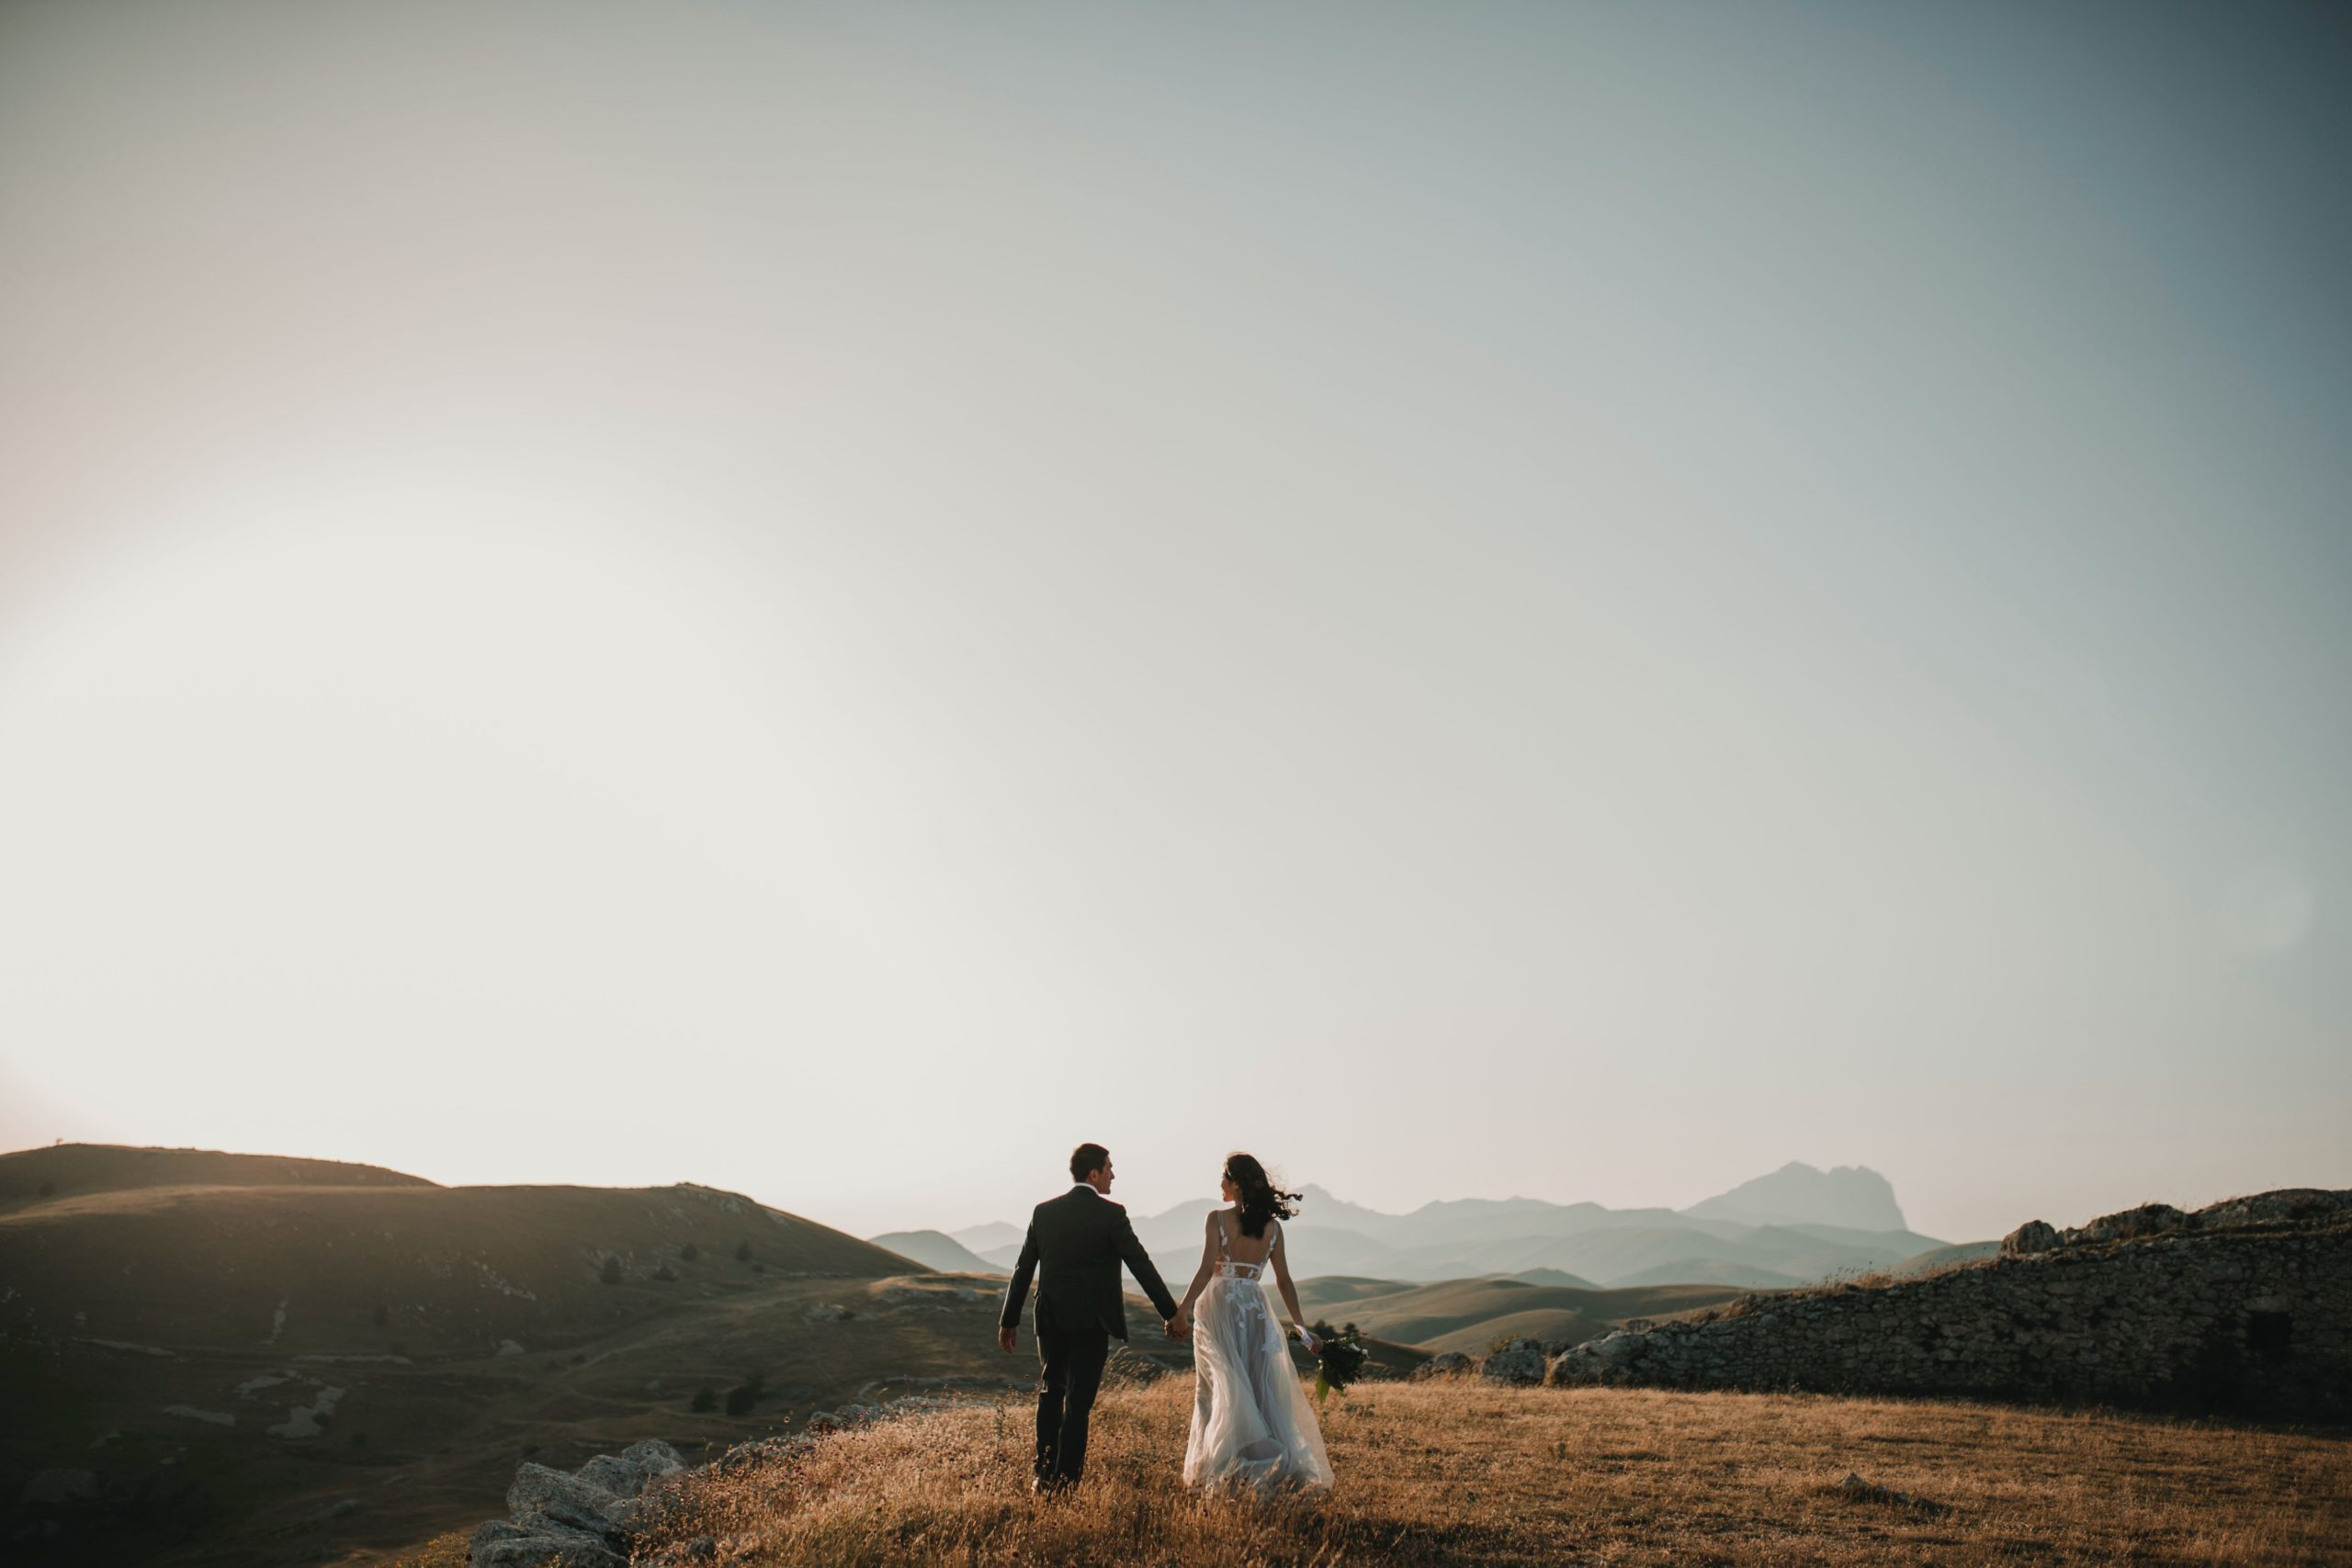 Eloping: What It Is and How to Do It 1